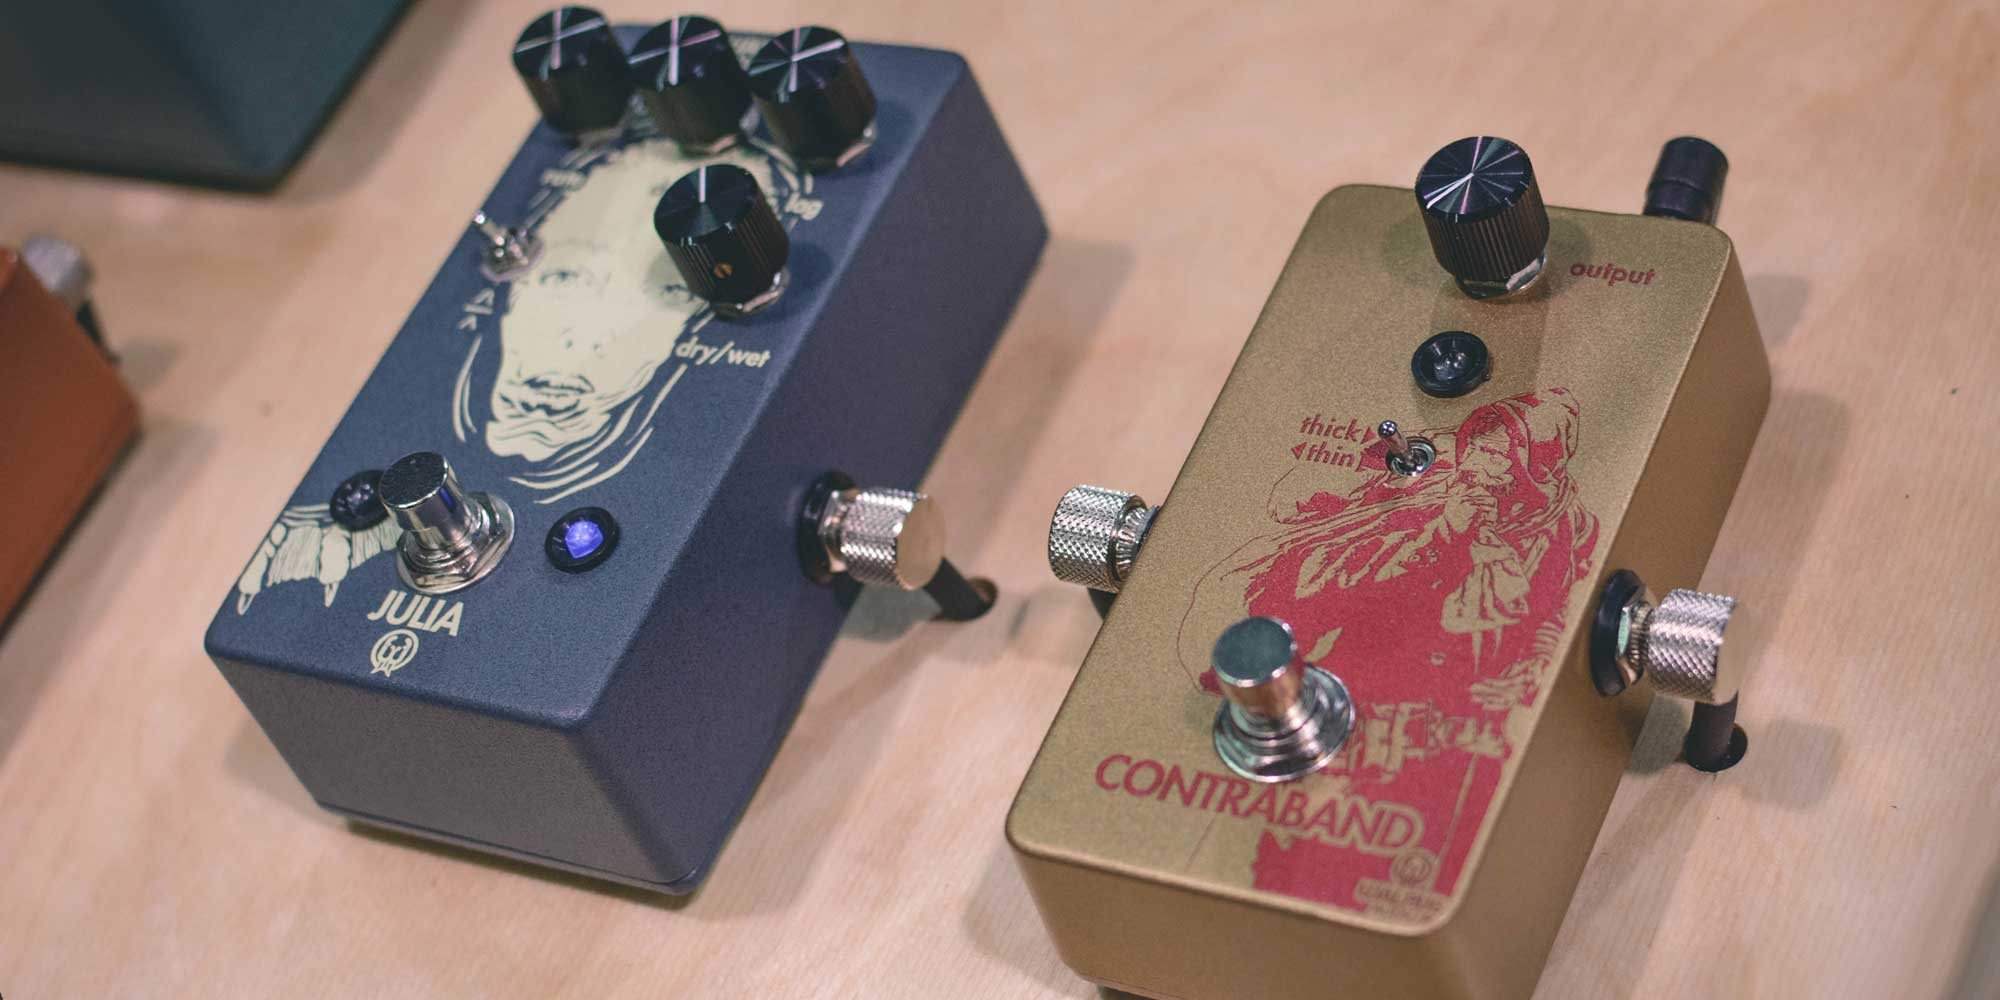 Julia Chorus/Vibrato and Contraband Fuzz from Walrus Audio